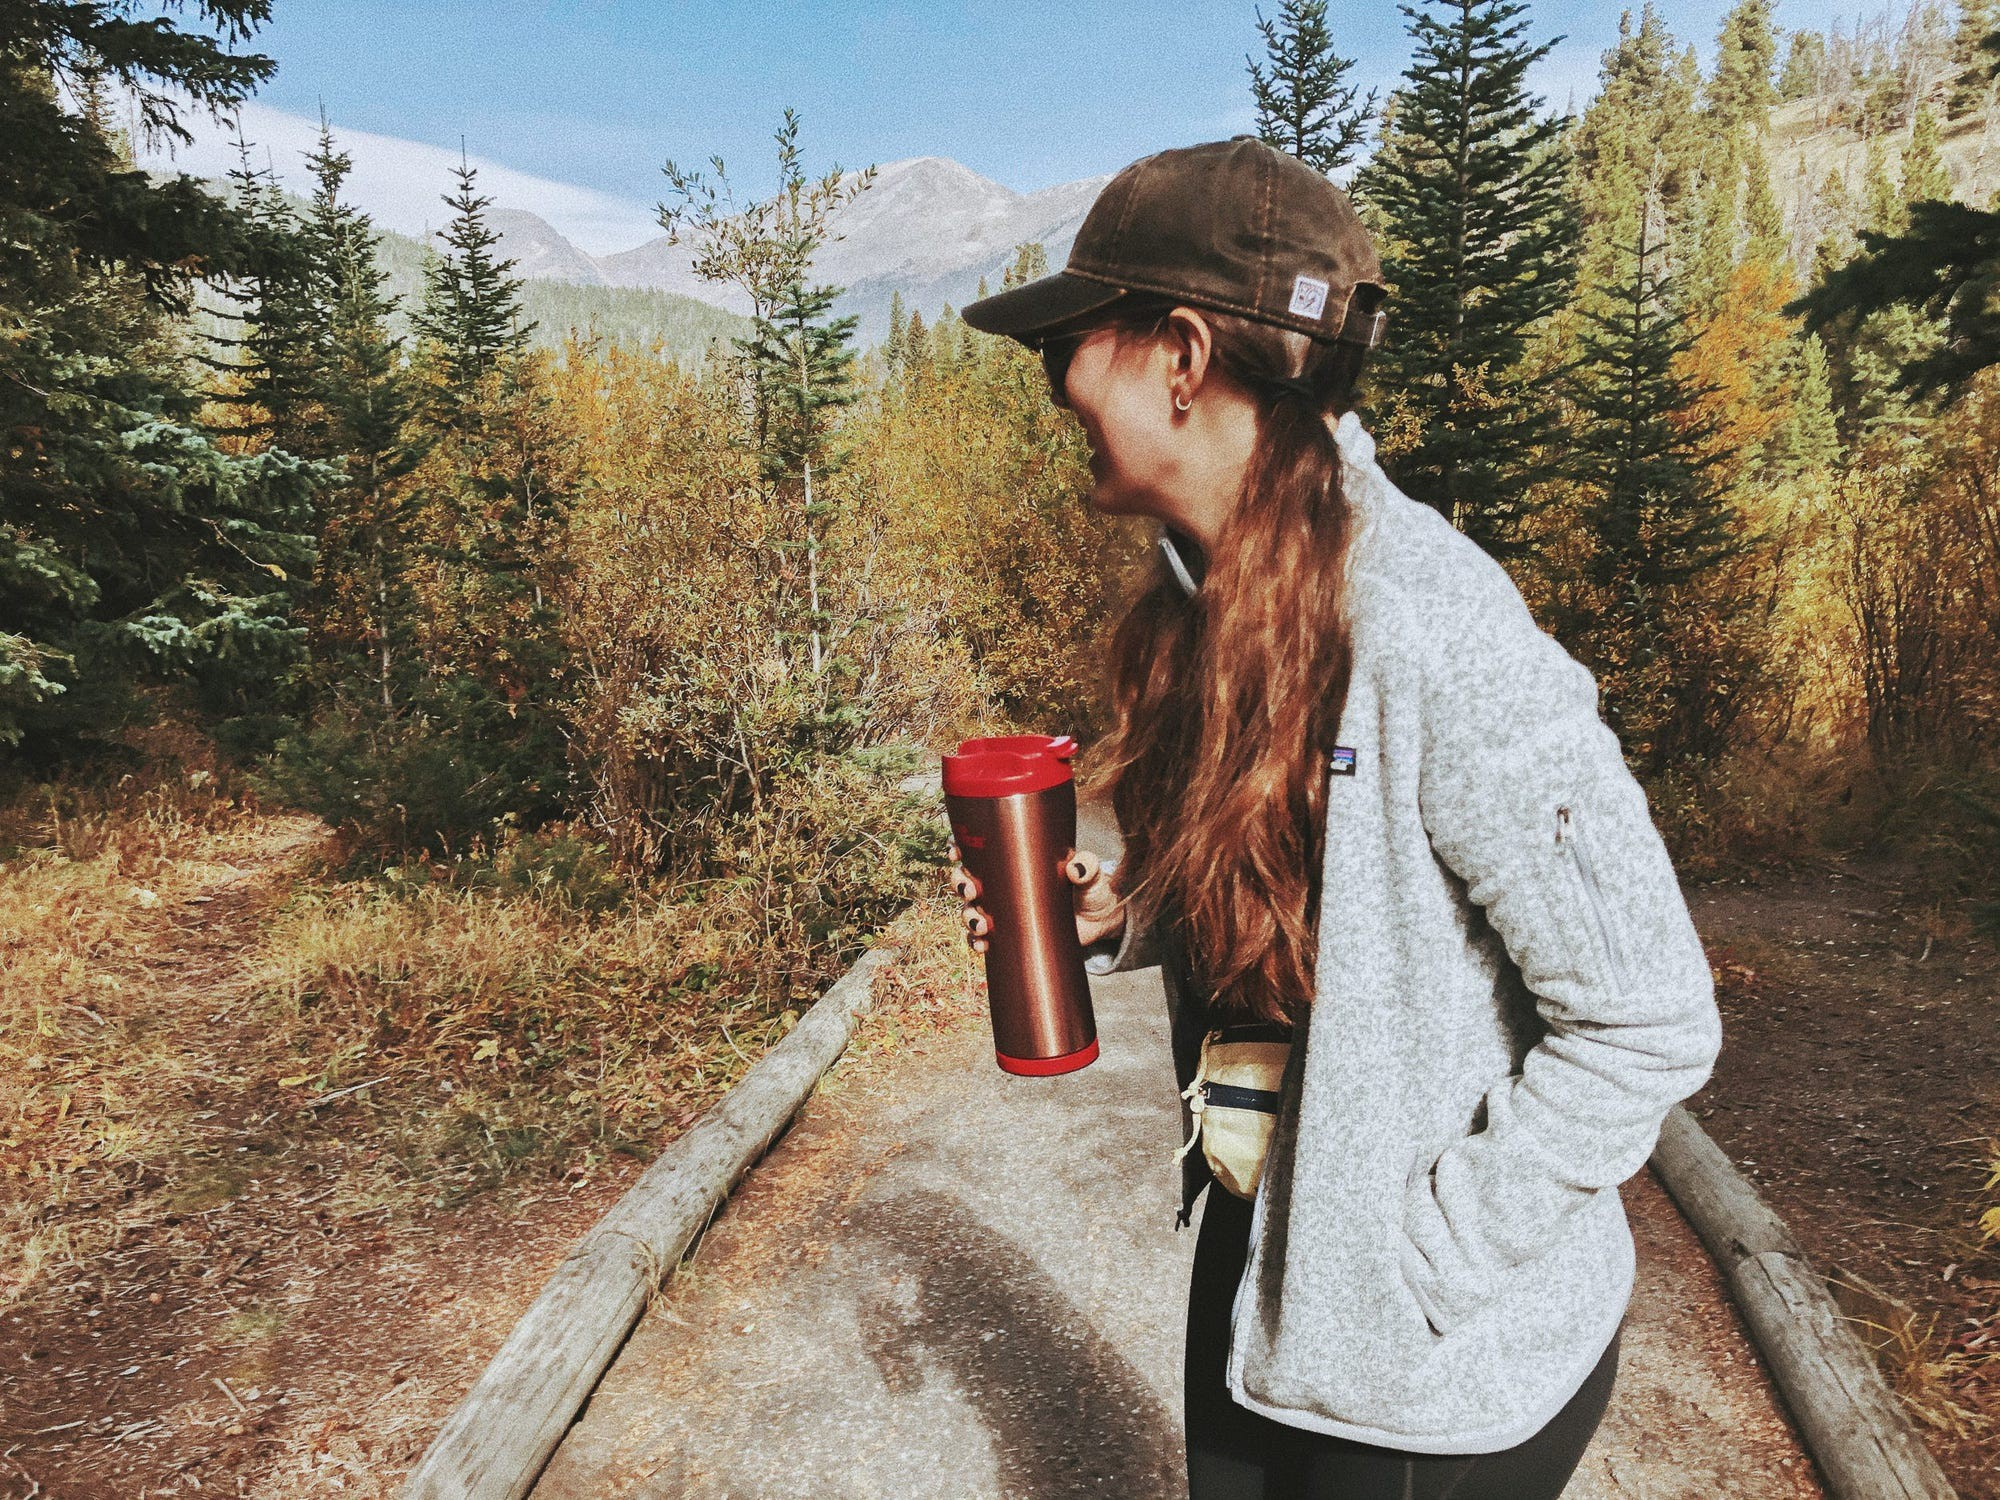 Nika Canlas Potts on a hiking trail in Colorado.